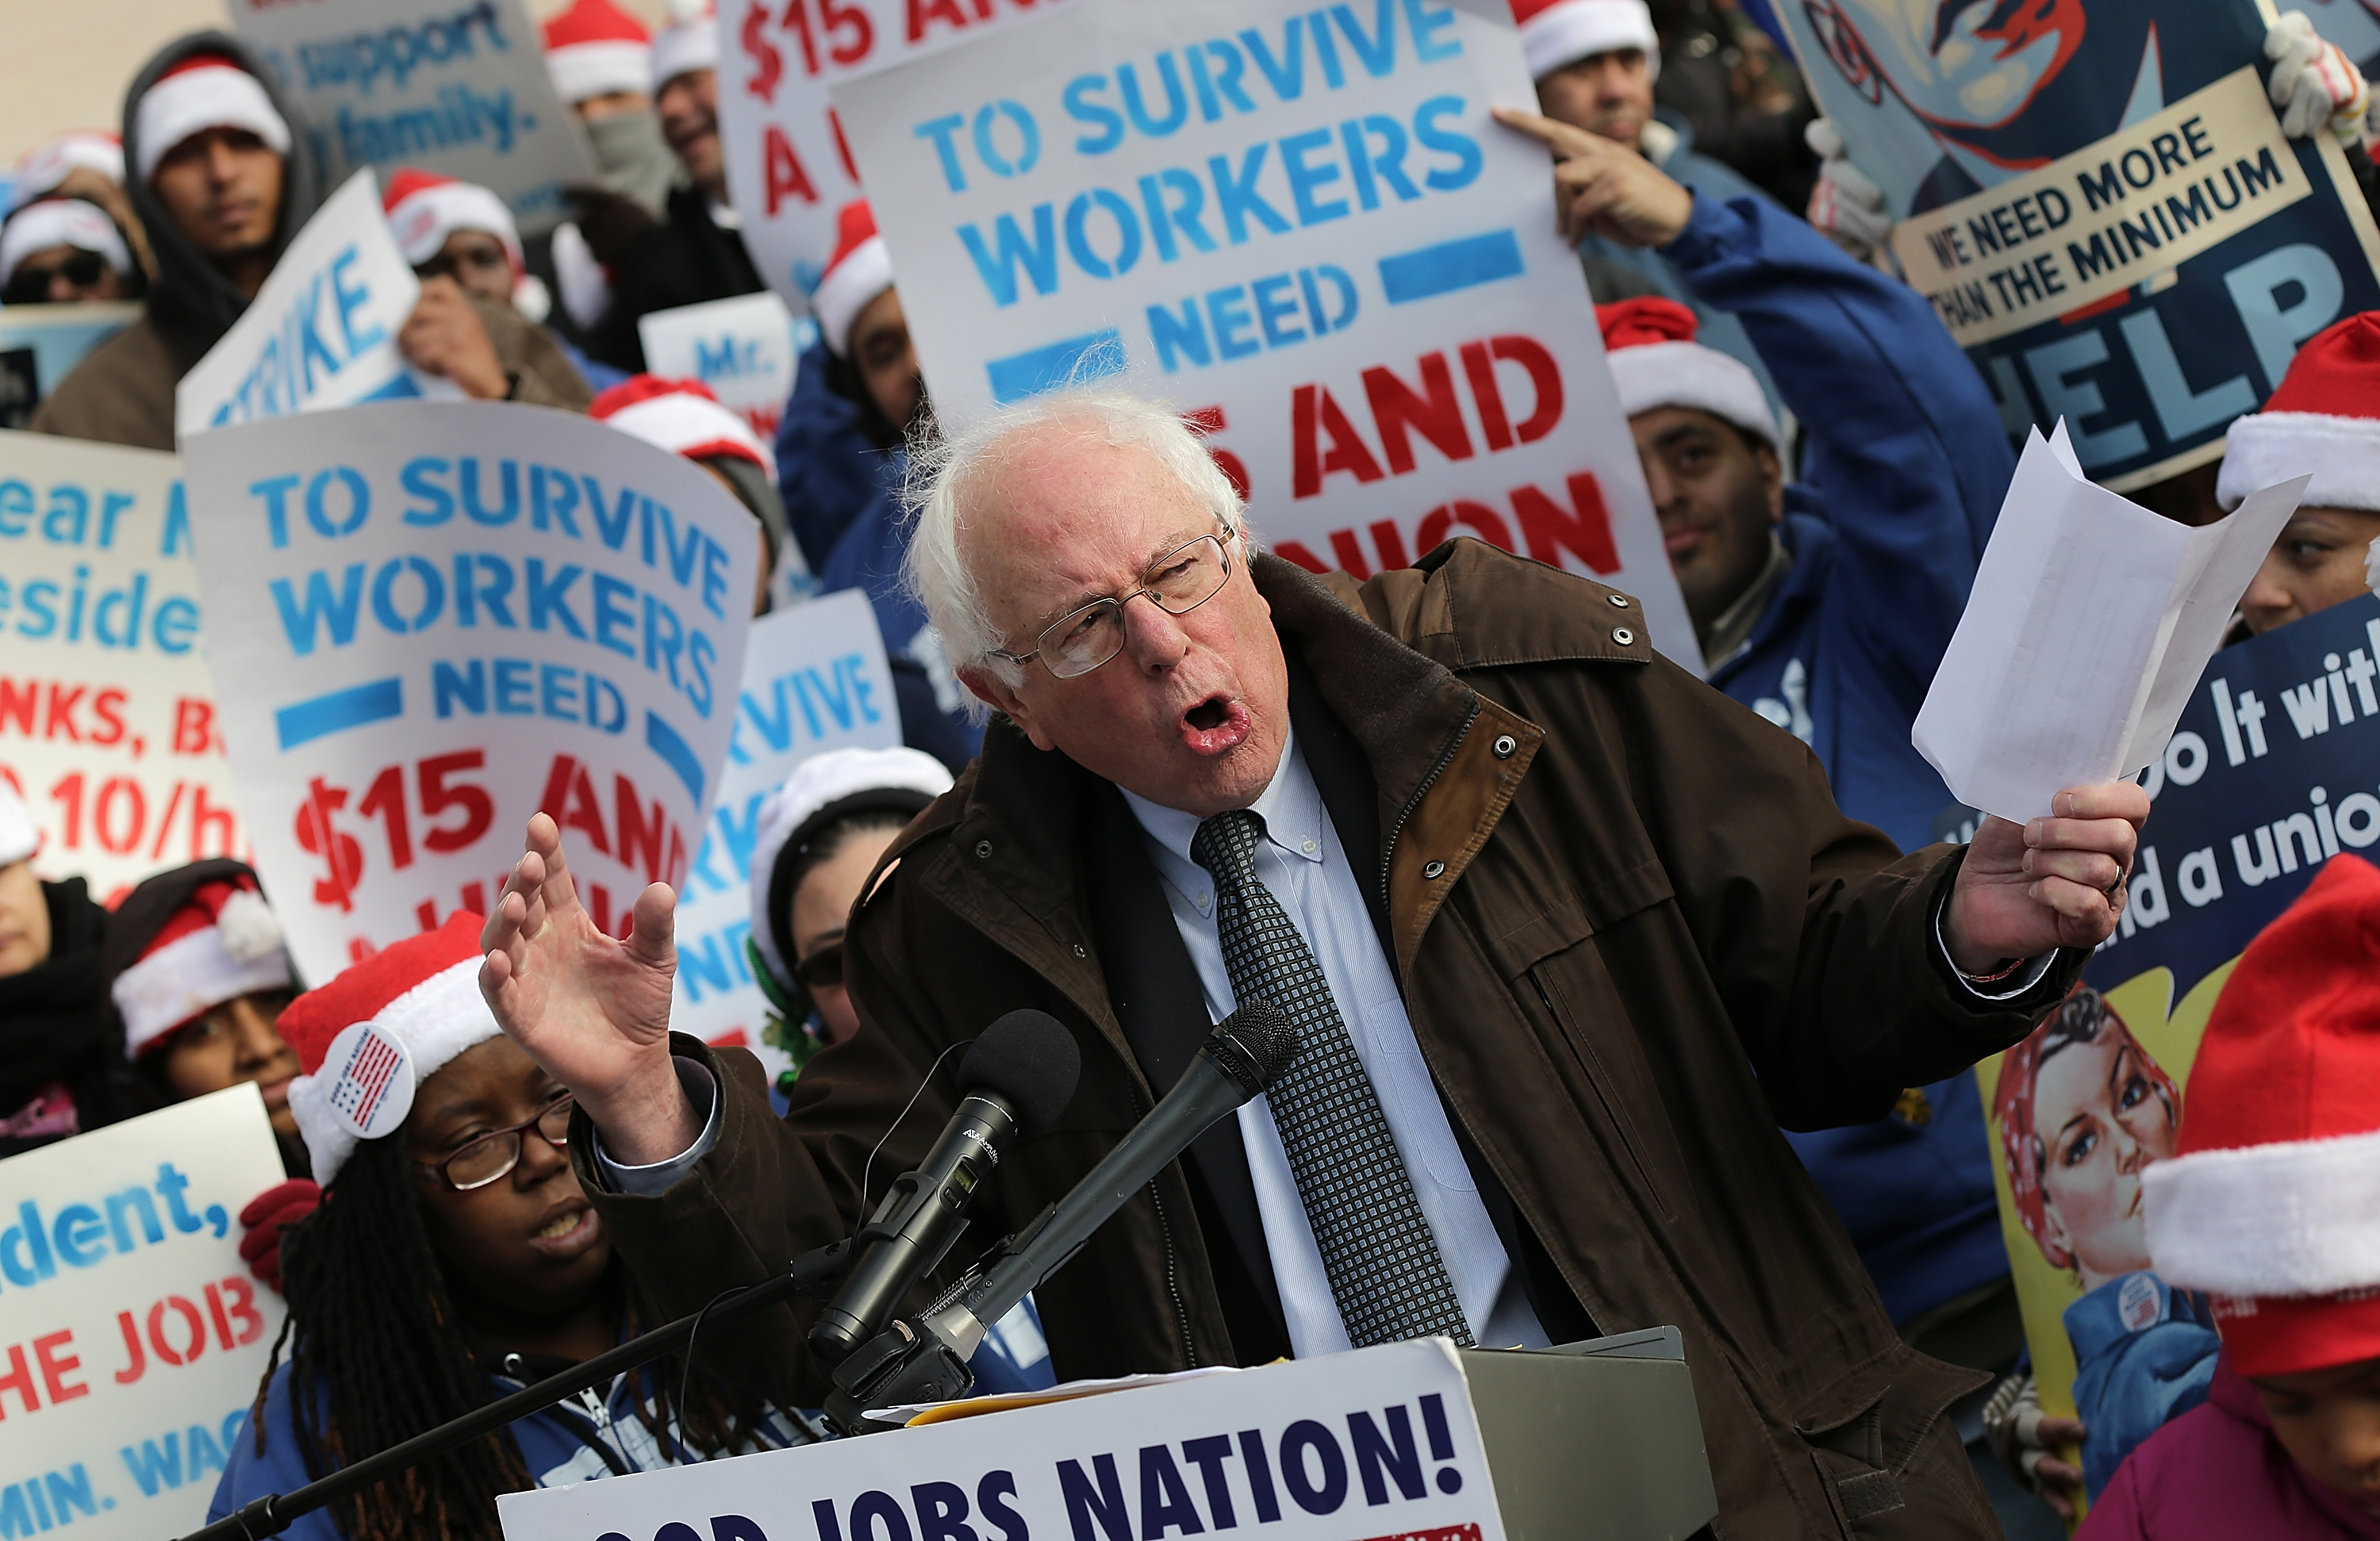 WASHINGTON, DC - DECEMBER 04:  U.S. Sen. Bernie Sanders (I-VT) speaks to low-wage federal contract workers during a protest where the workers demanded presidential action to win an increase to  $15 an hour wage December 4, 2014 in Washington, DC. A number of workers were expected to walk off their jobs later in the day as part of the protest.  (Photo by Win McNamee/Getty Images)